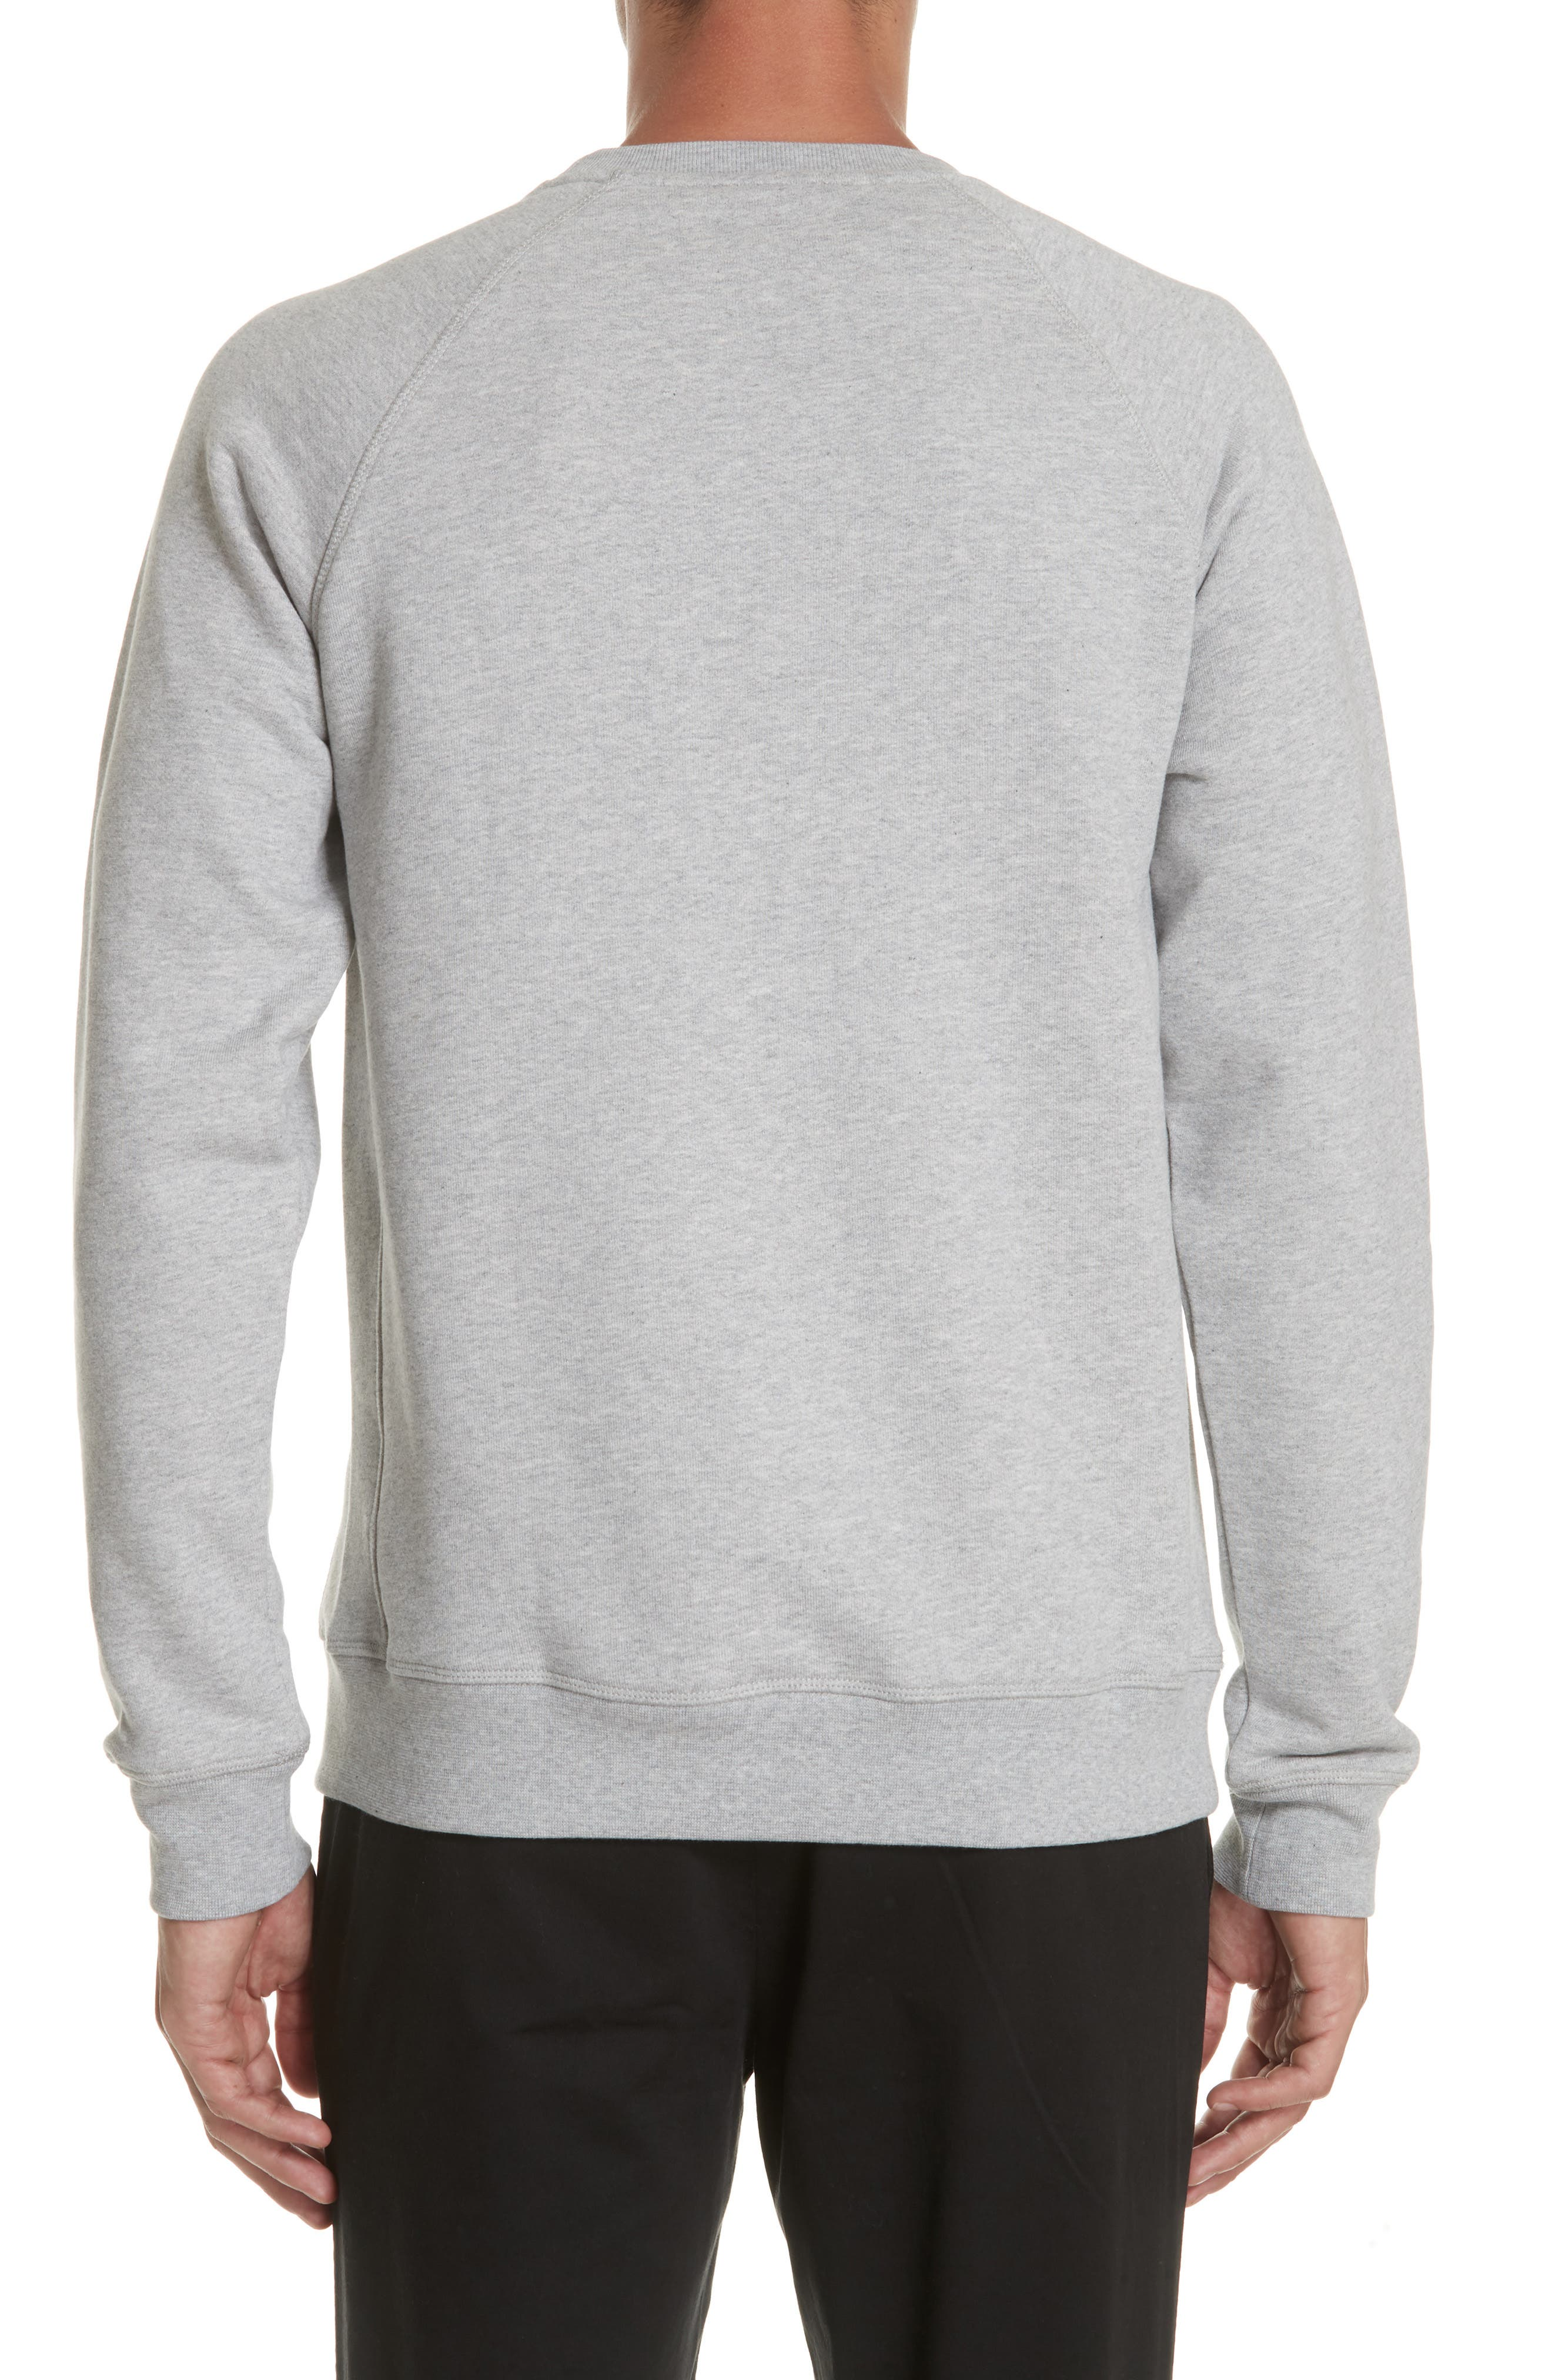 Ketel Crewneck Sweatshirt,                             Alternate thumbnail 2, color,                             050